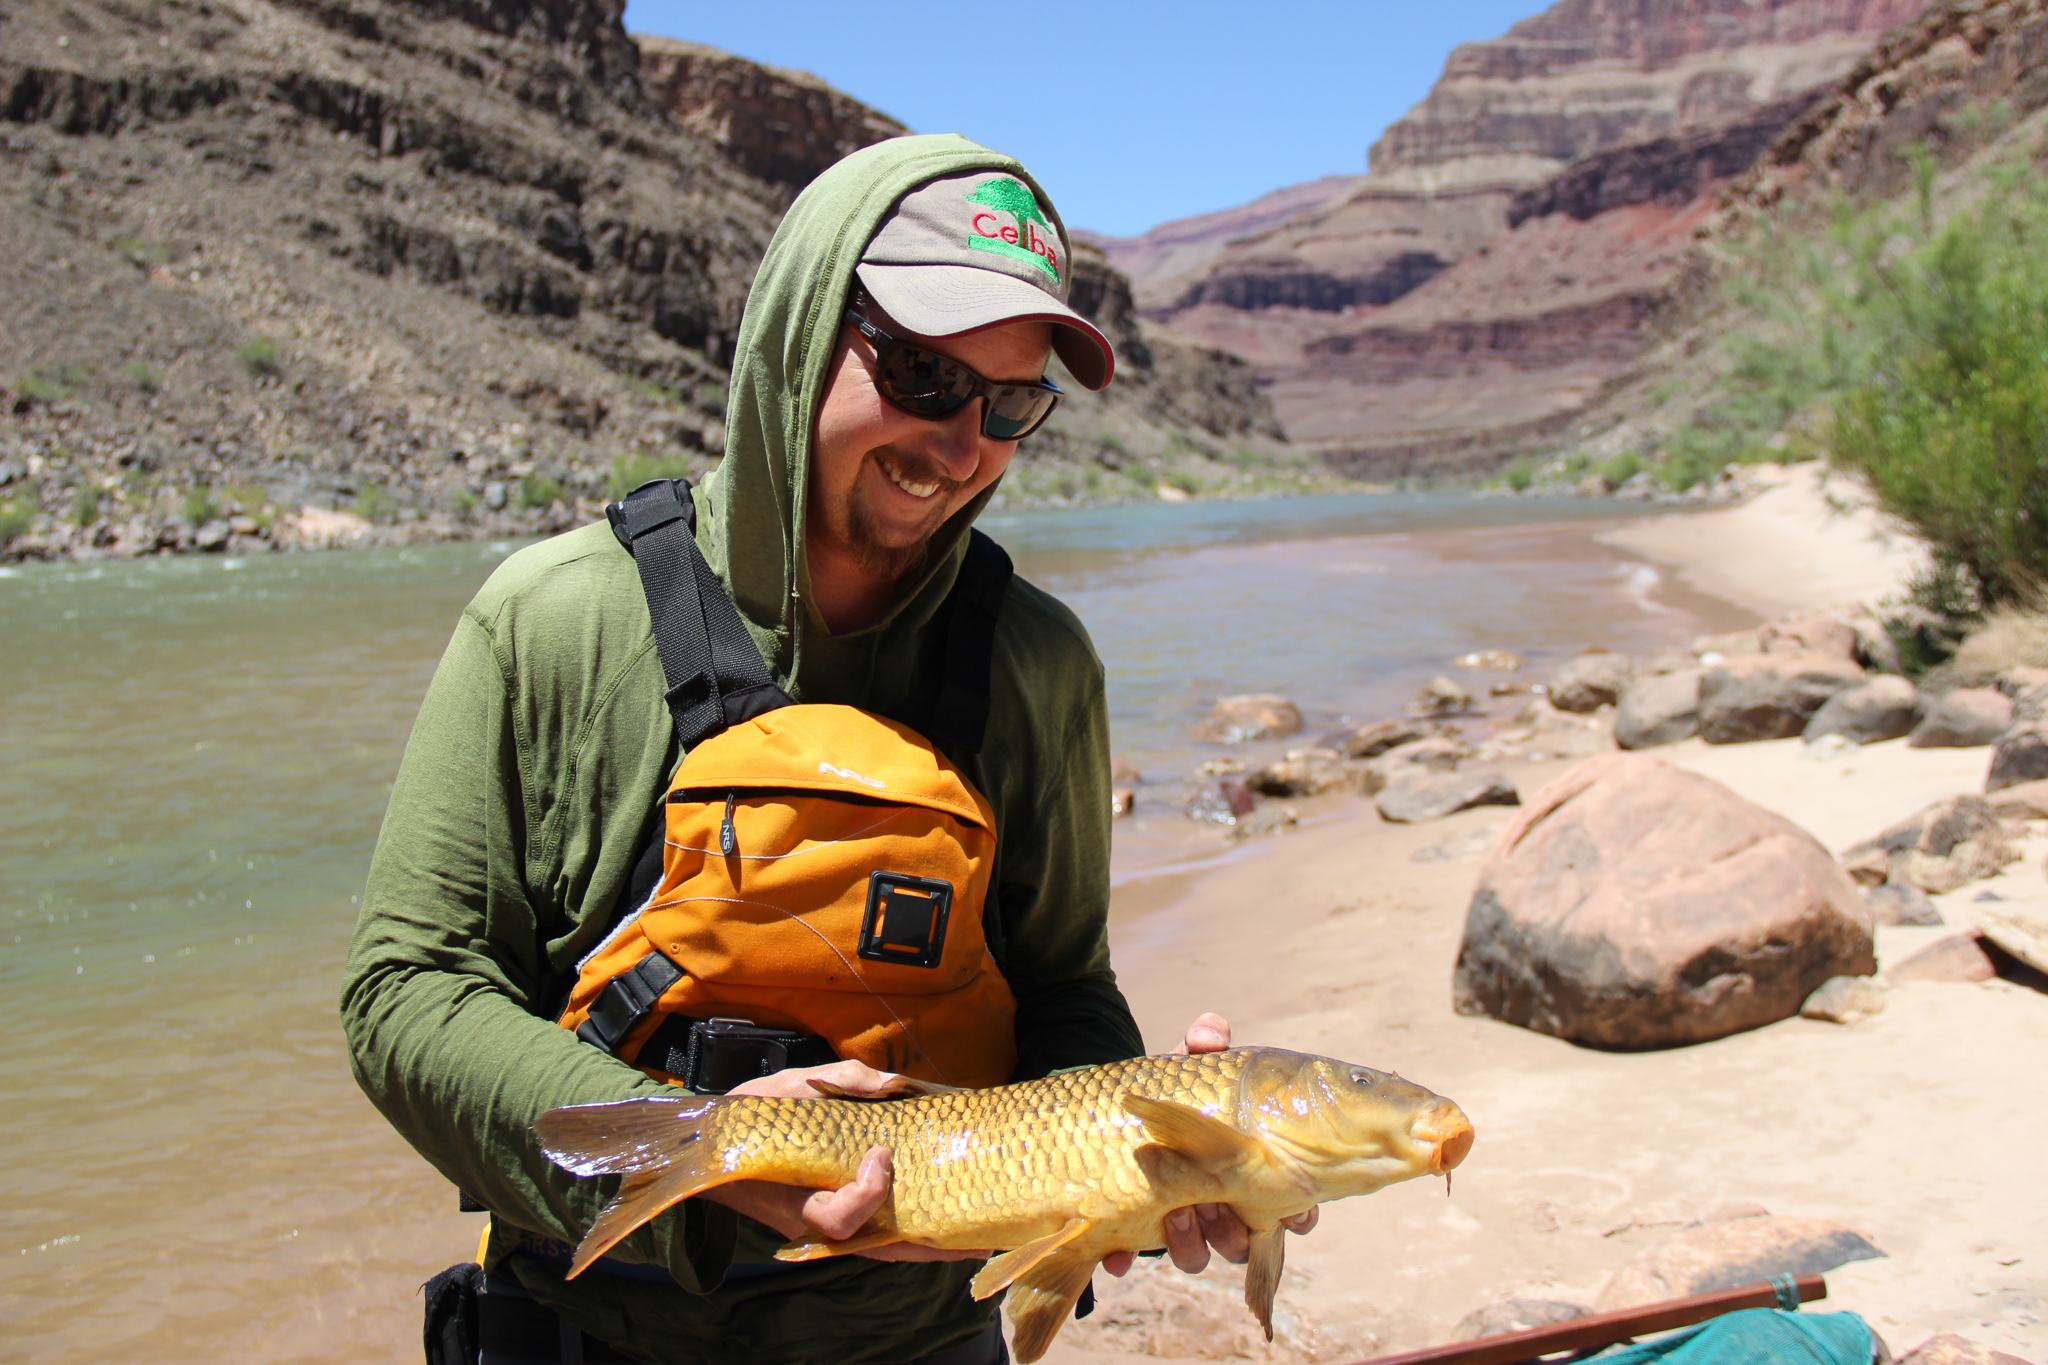 Fish biologist Adam Barkalow admires an invasive carp, one of the few non-native species capable of surviving in the challenging conditions in the Grand Canyon.